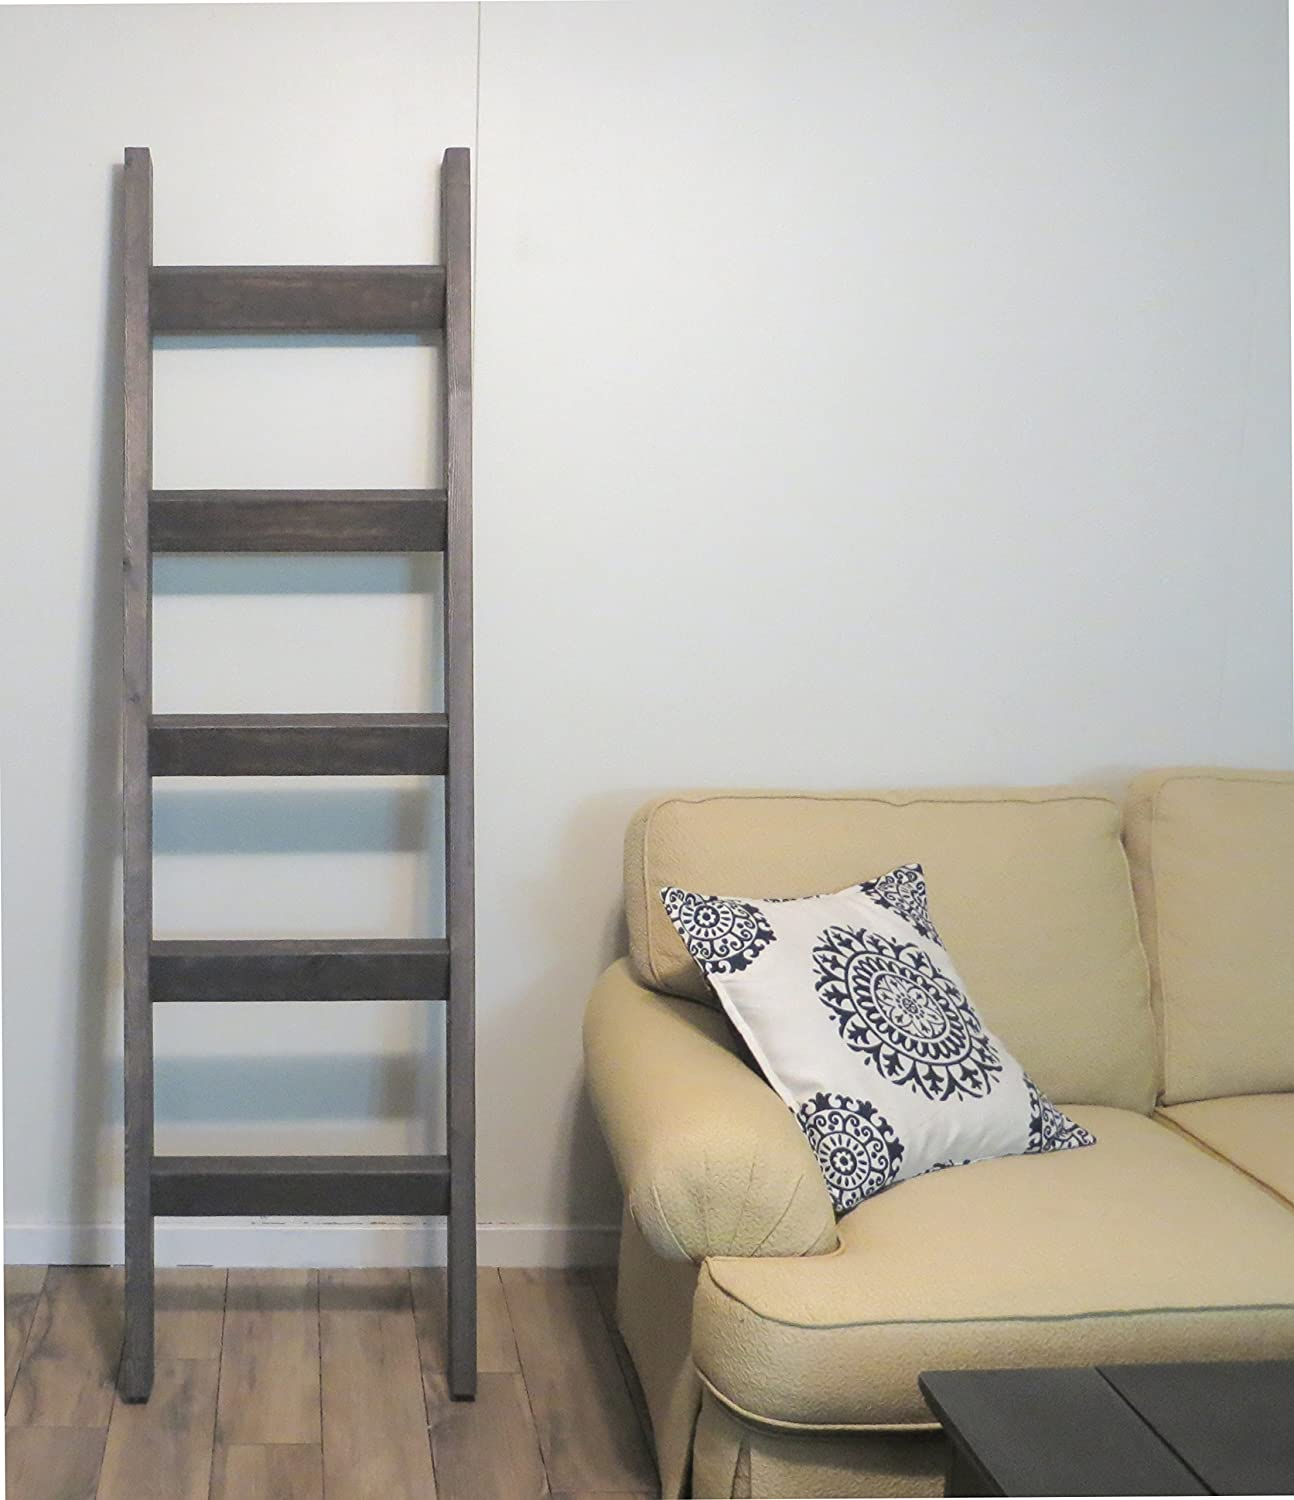 Amazon 6 Ft Blanket Ladder Decorative Wooden Quilt Joanna Chip Gaines HGTV Style Decor Rustic Pine Wood